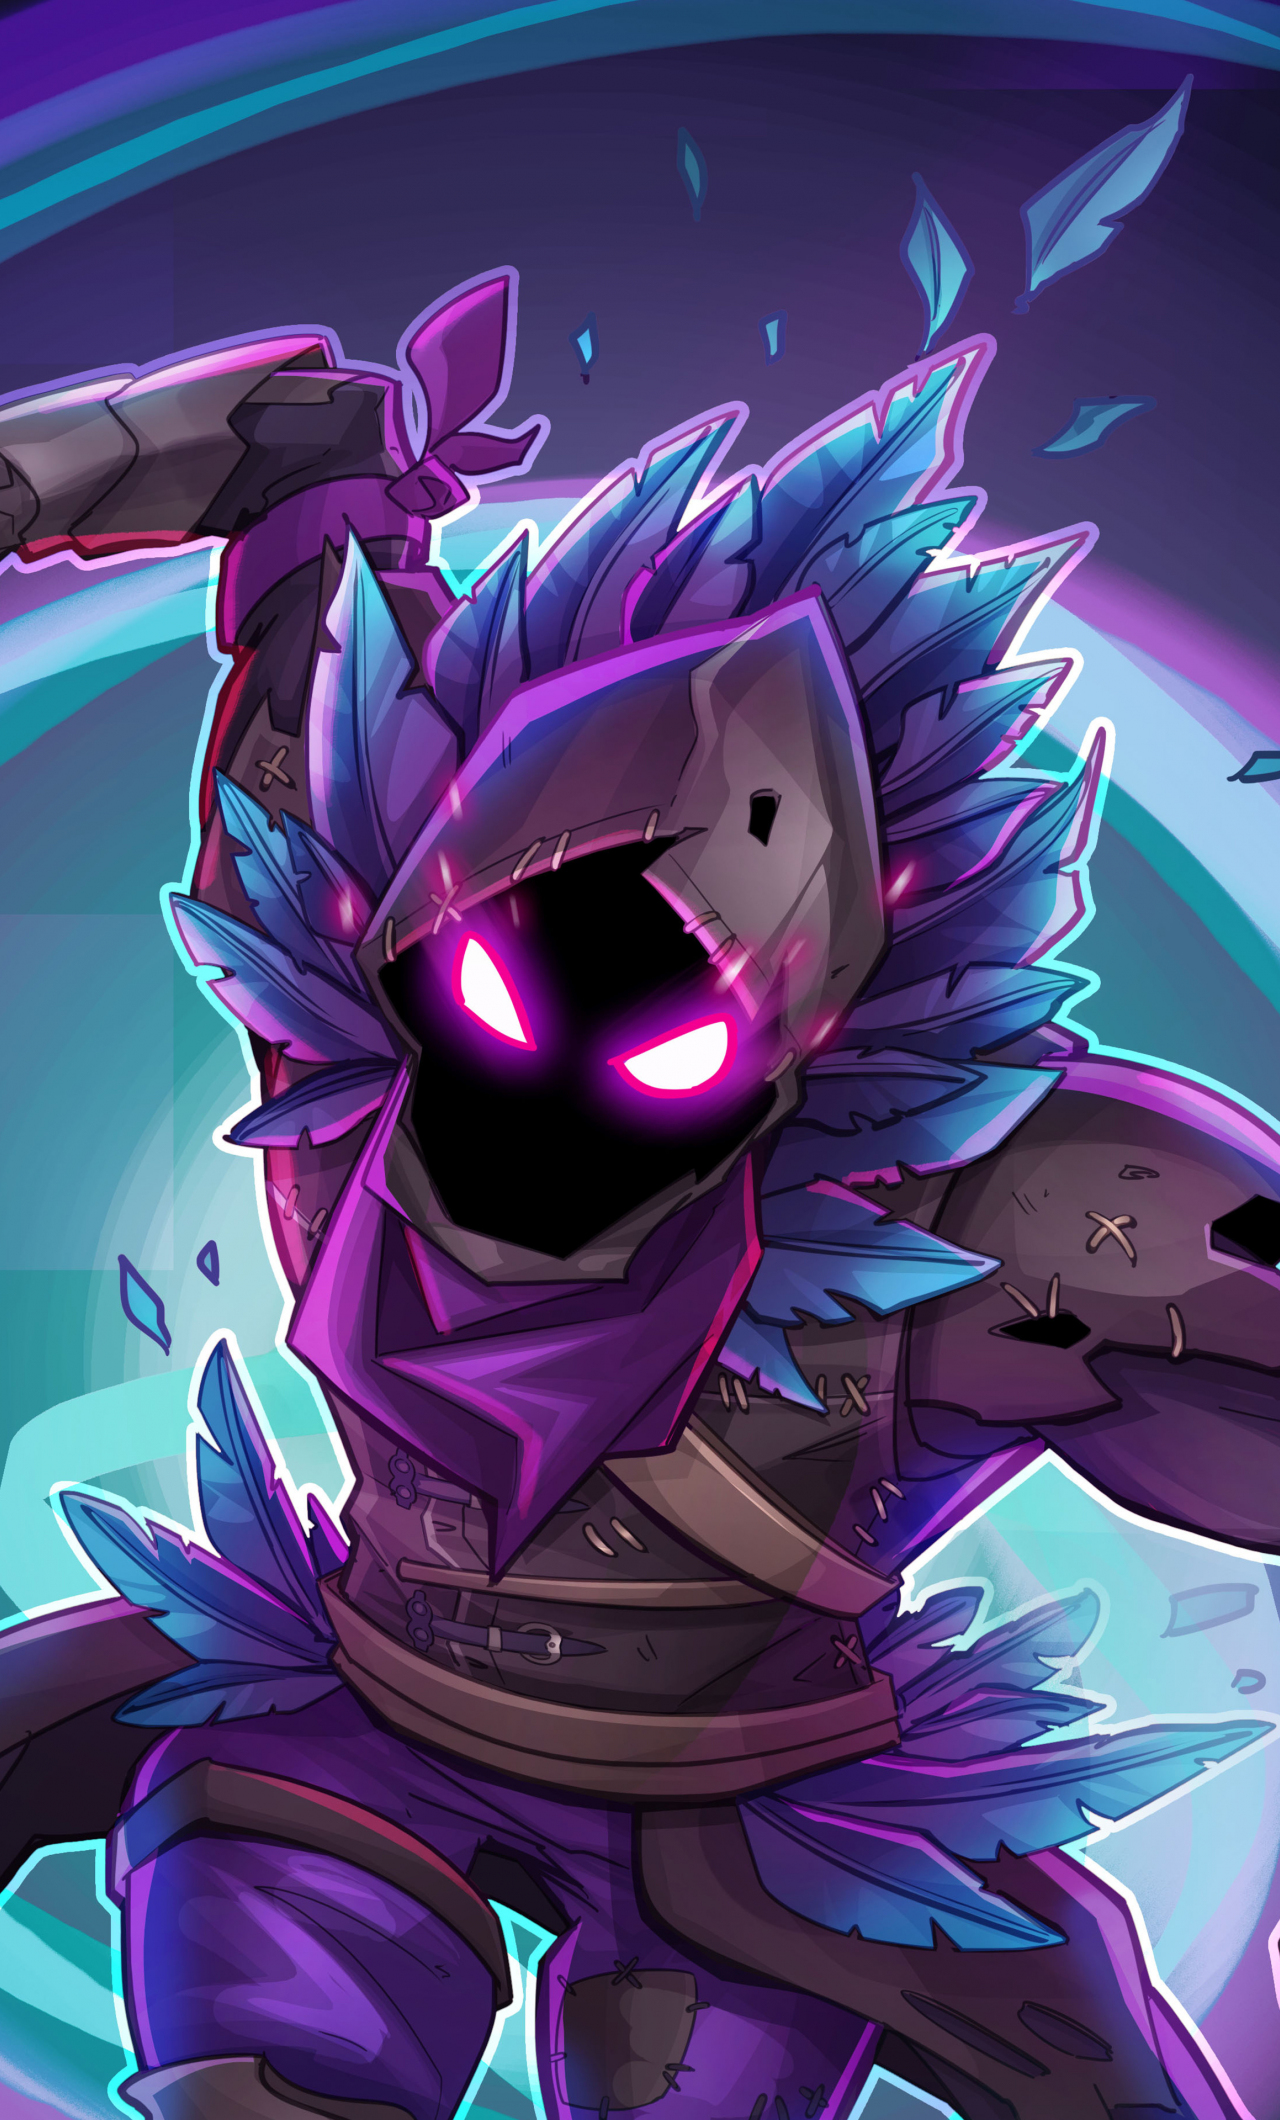 Iphone X Fortnite Wallpapers Download 1280x2120 Wallpaper Raven Fortnite Battle Royale